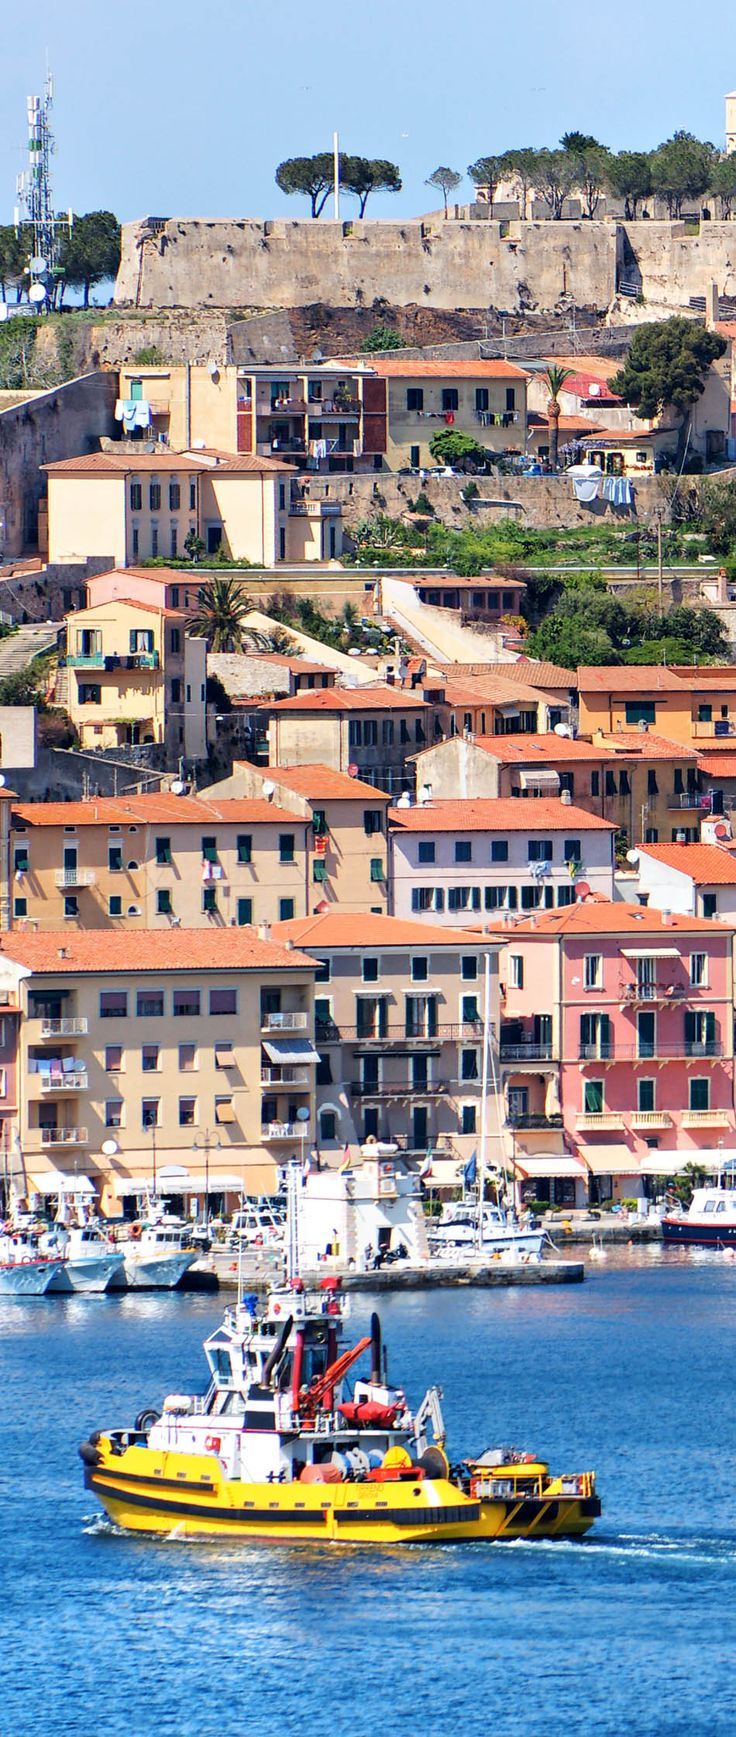 View of Portoferraio old city, with the Forte Stella and the Napoleon Villa. Isle of Elba, Livorno, Italy.   45 Reasons why Italy is One of the most Visited Countries in the World